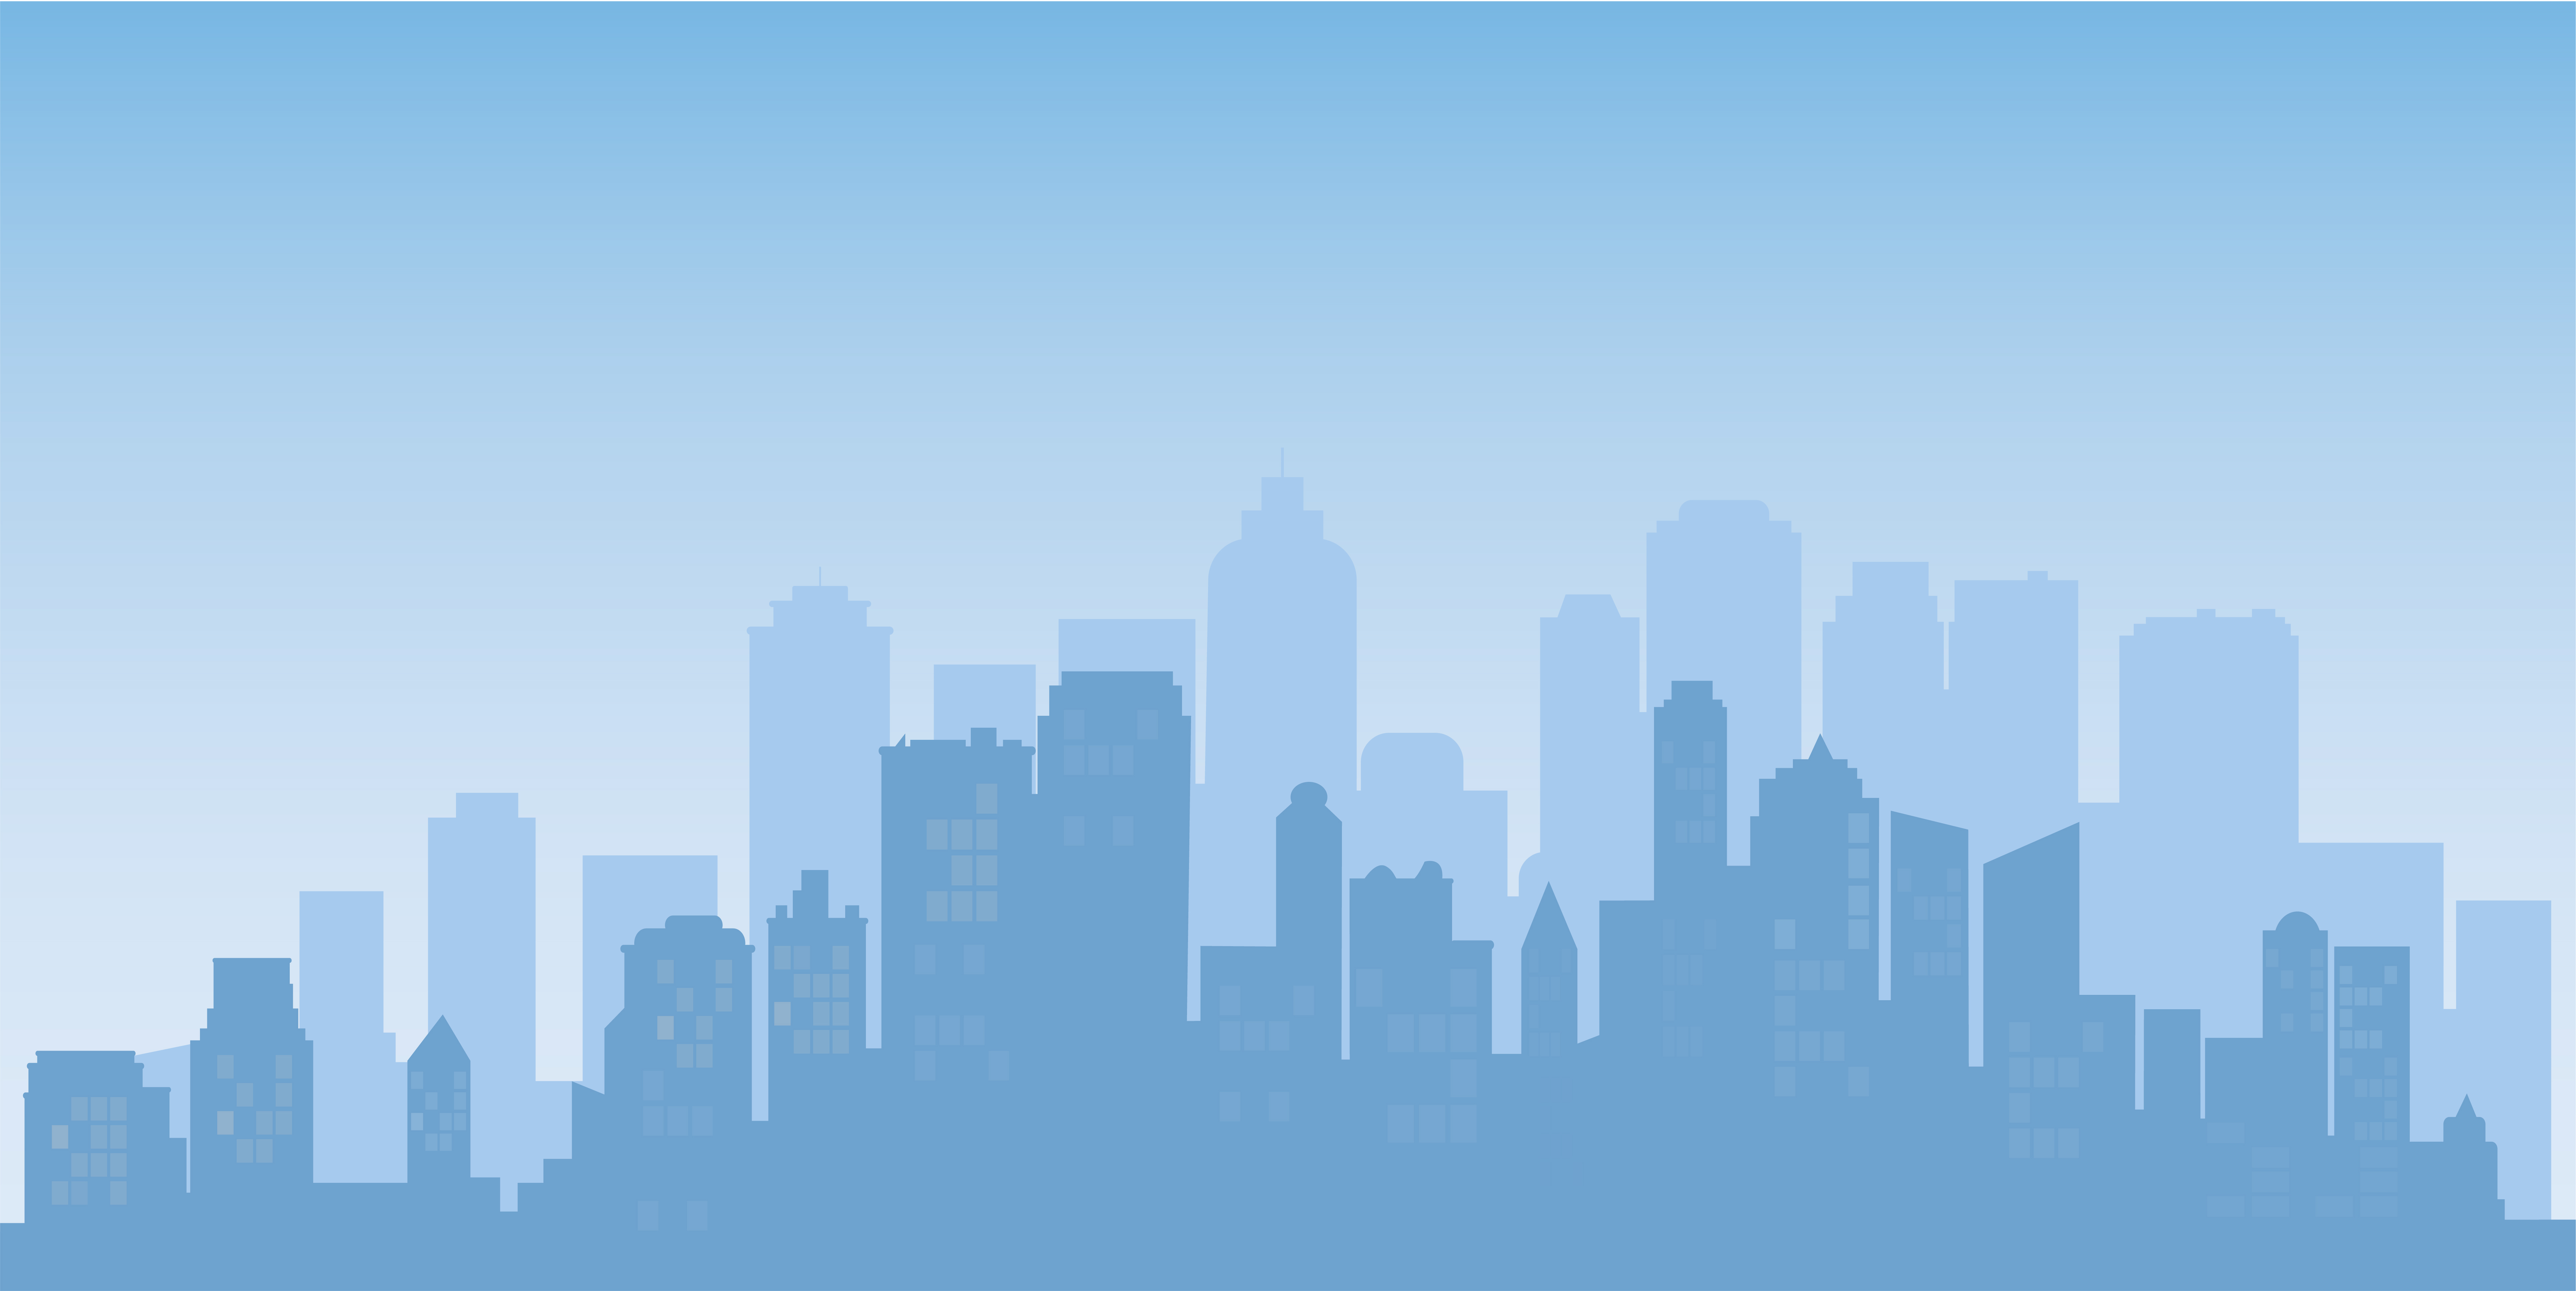 Buildings Silhouette Cityscape Background  Modern